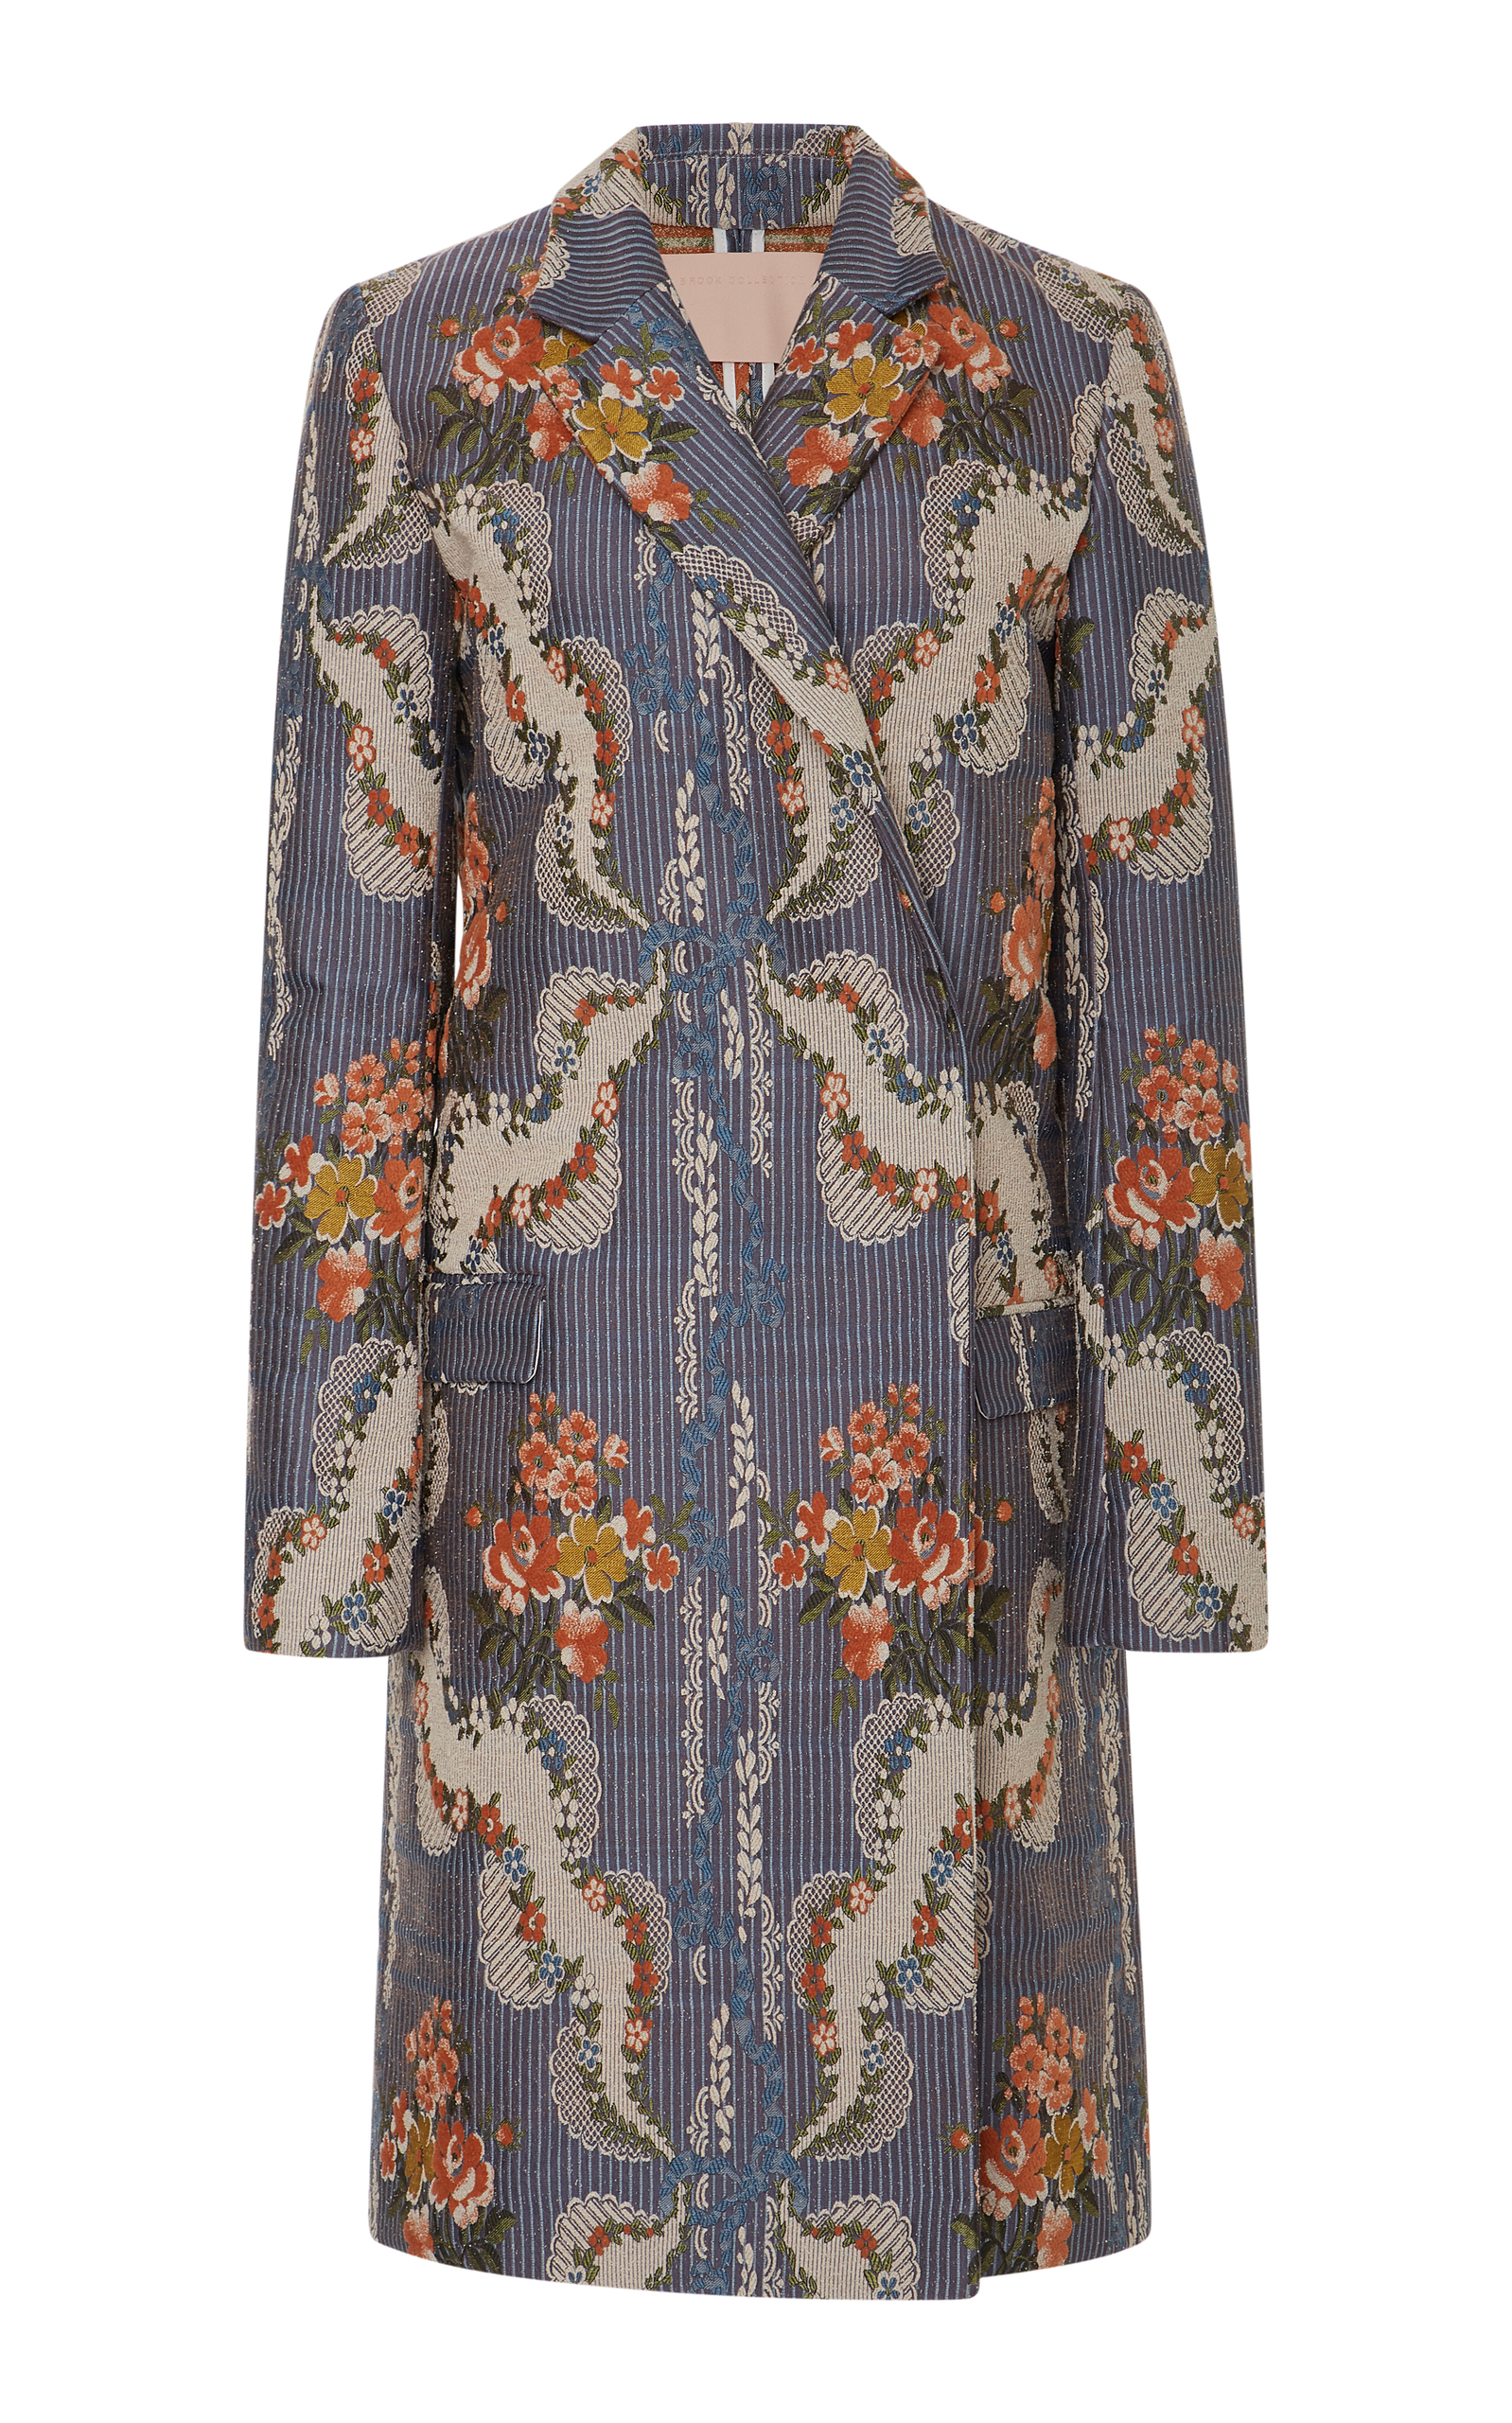 Brock Collection  CHANDLER FLORAL CORDED JACQUARD COAT